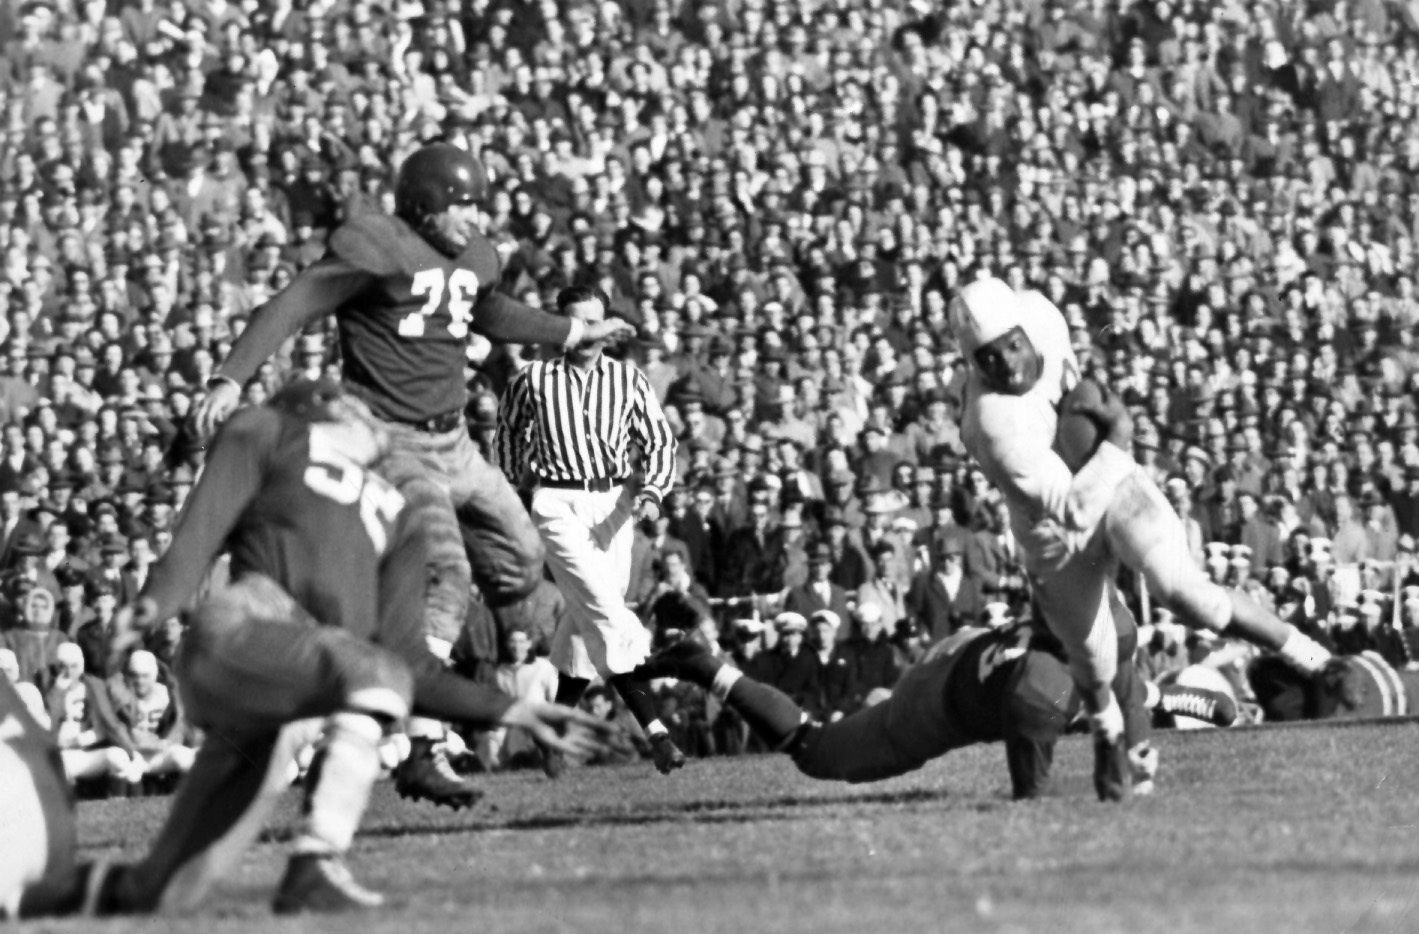 Penn State running back Wallace Triplett avoids an SMU tackler in the 1948 Classic. Triplett was one of two black players for the Nittany Lions making the 1948 Classic the first integrated football game in Texas.